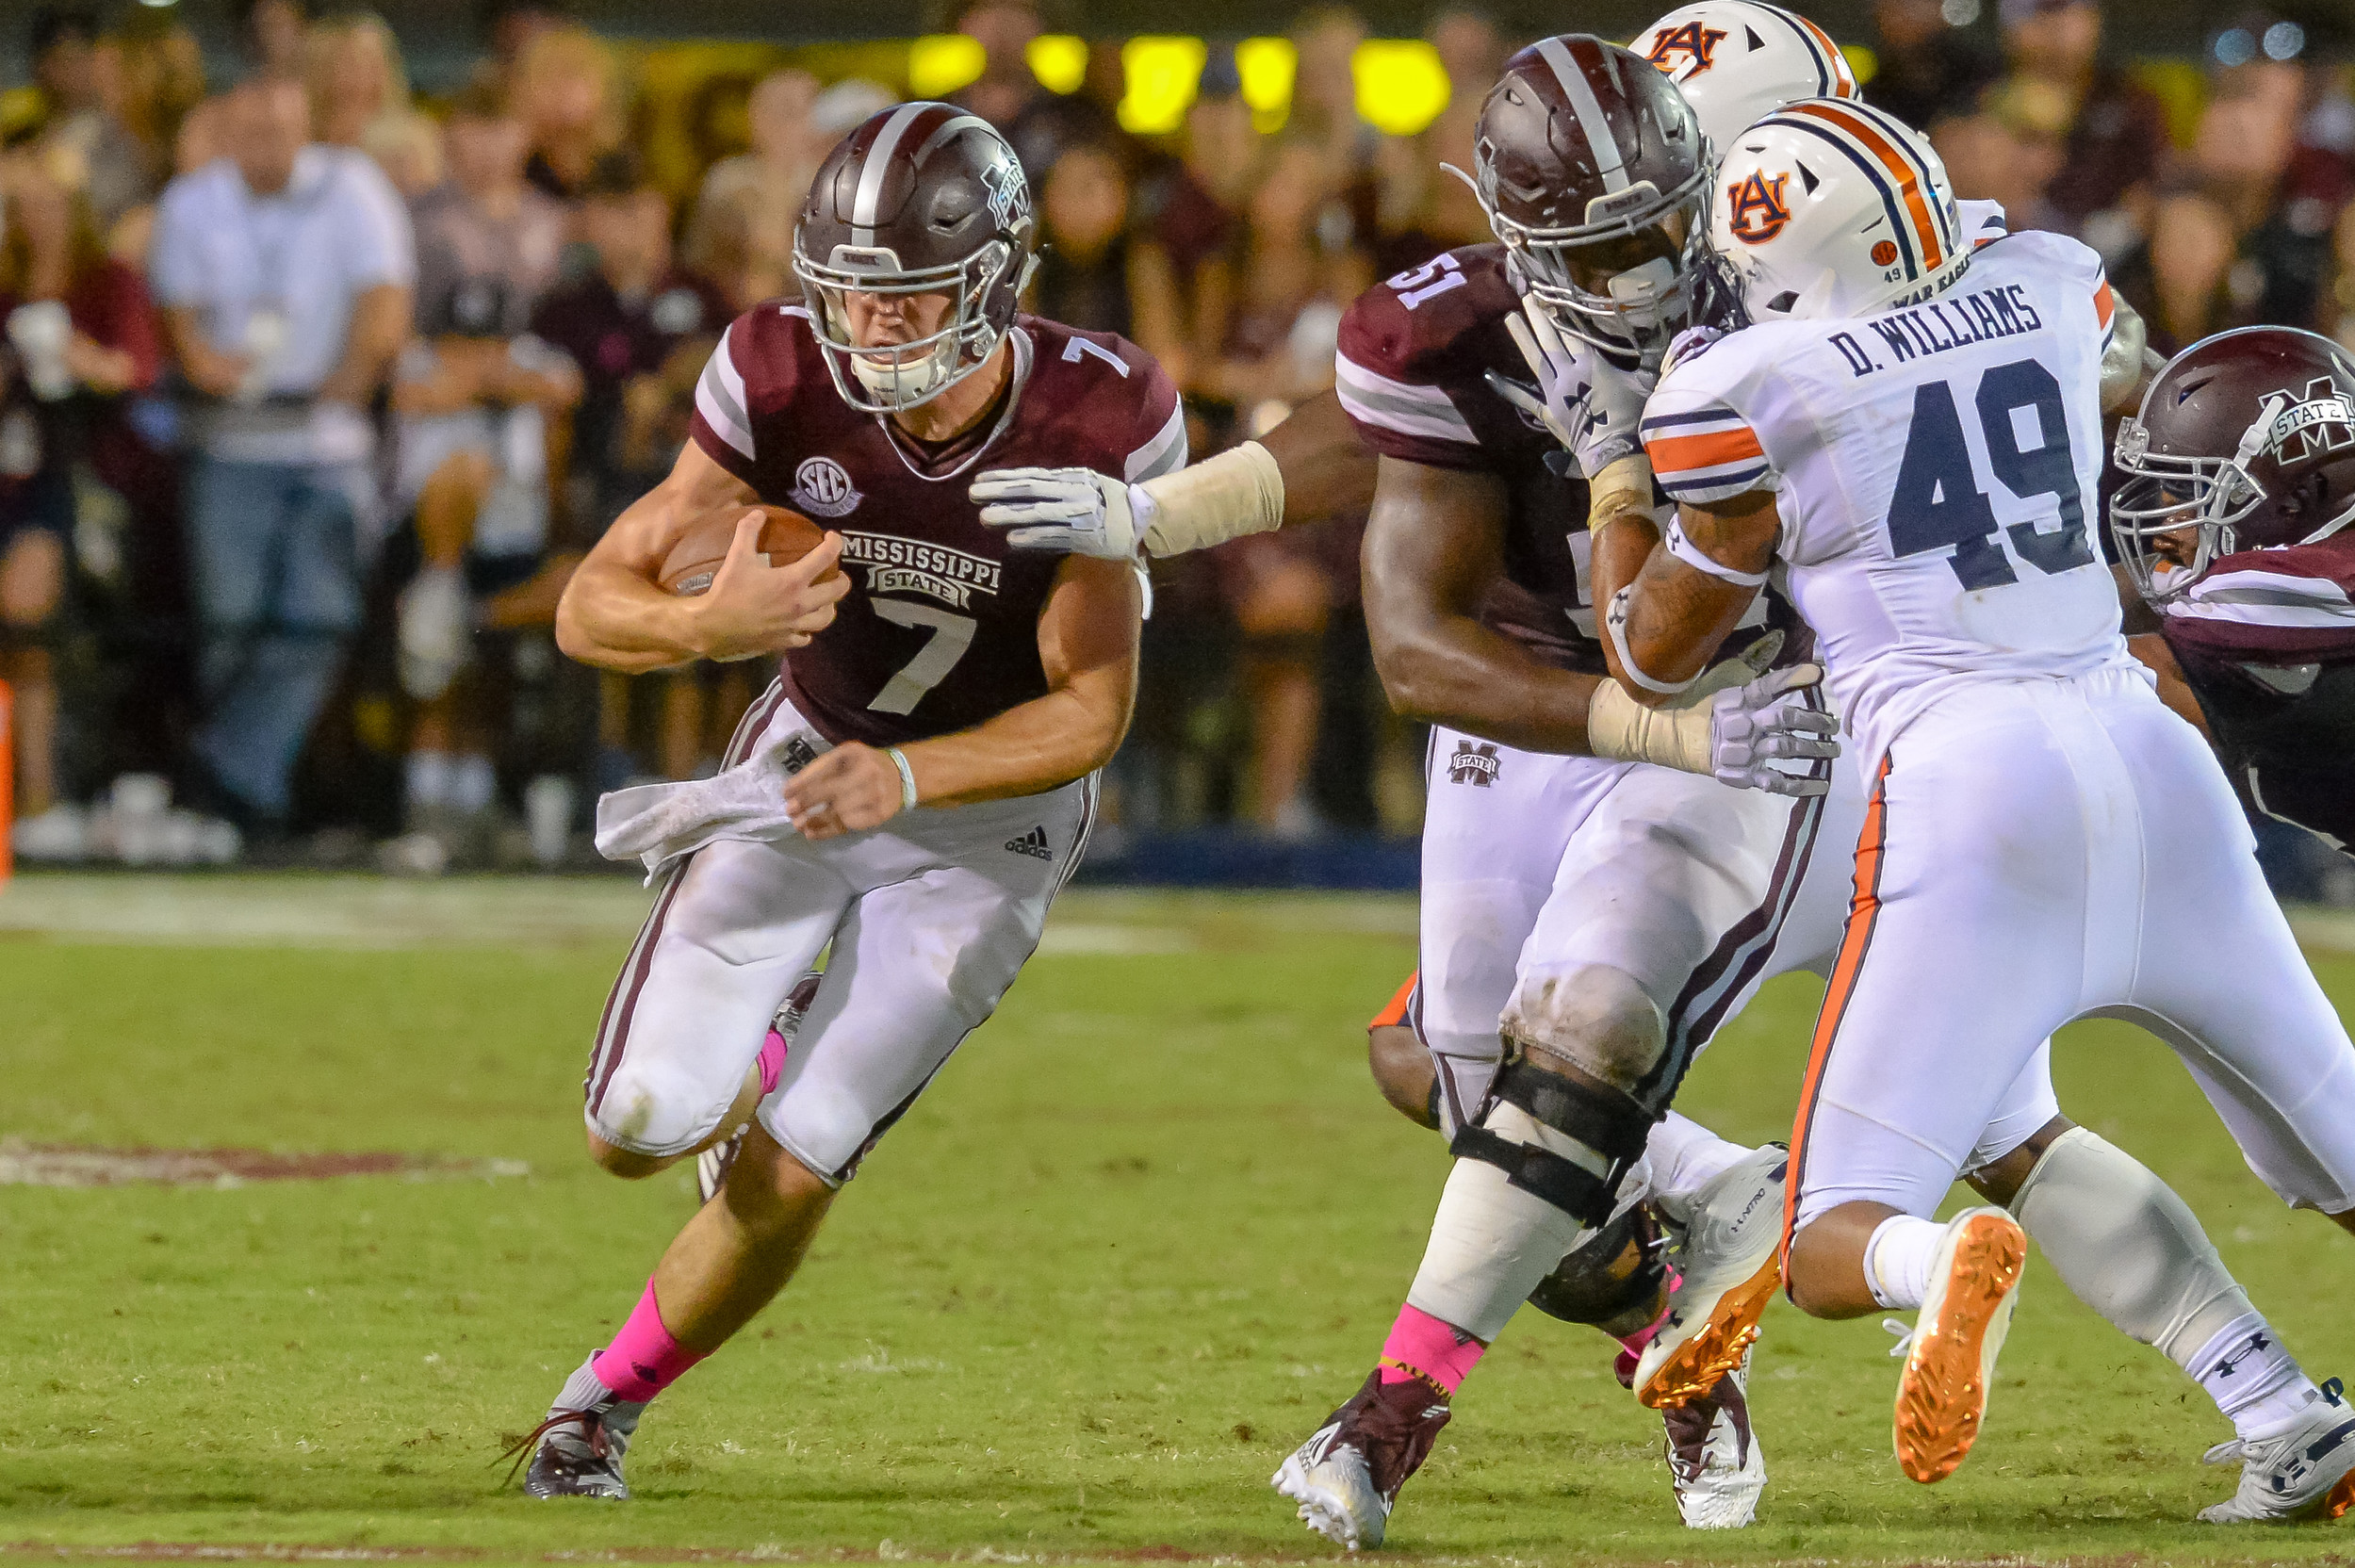 Mississippi State Bulldogs quarterback Nick Fitzgerald (7) runs for a first down during the second half of Saturday's game, at Davis Wade Stadium in Starkville, MS. Daily Mountain Eagle -  Jeff Johnsey